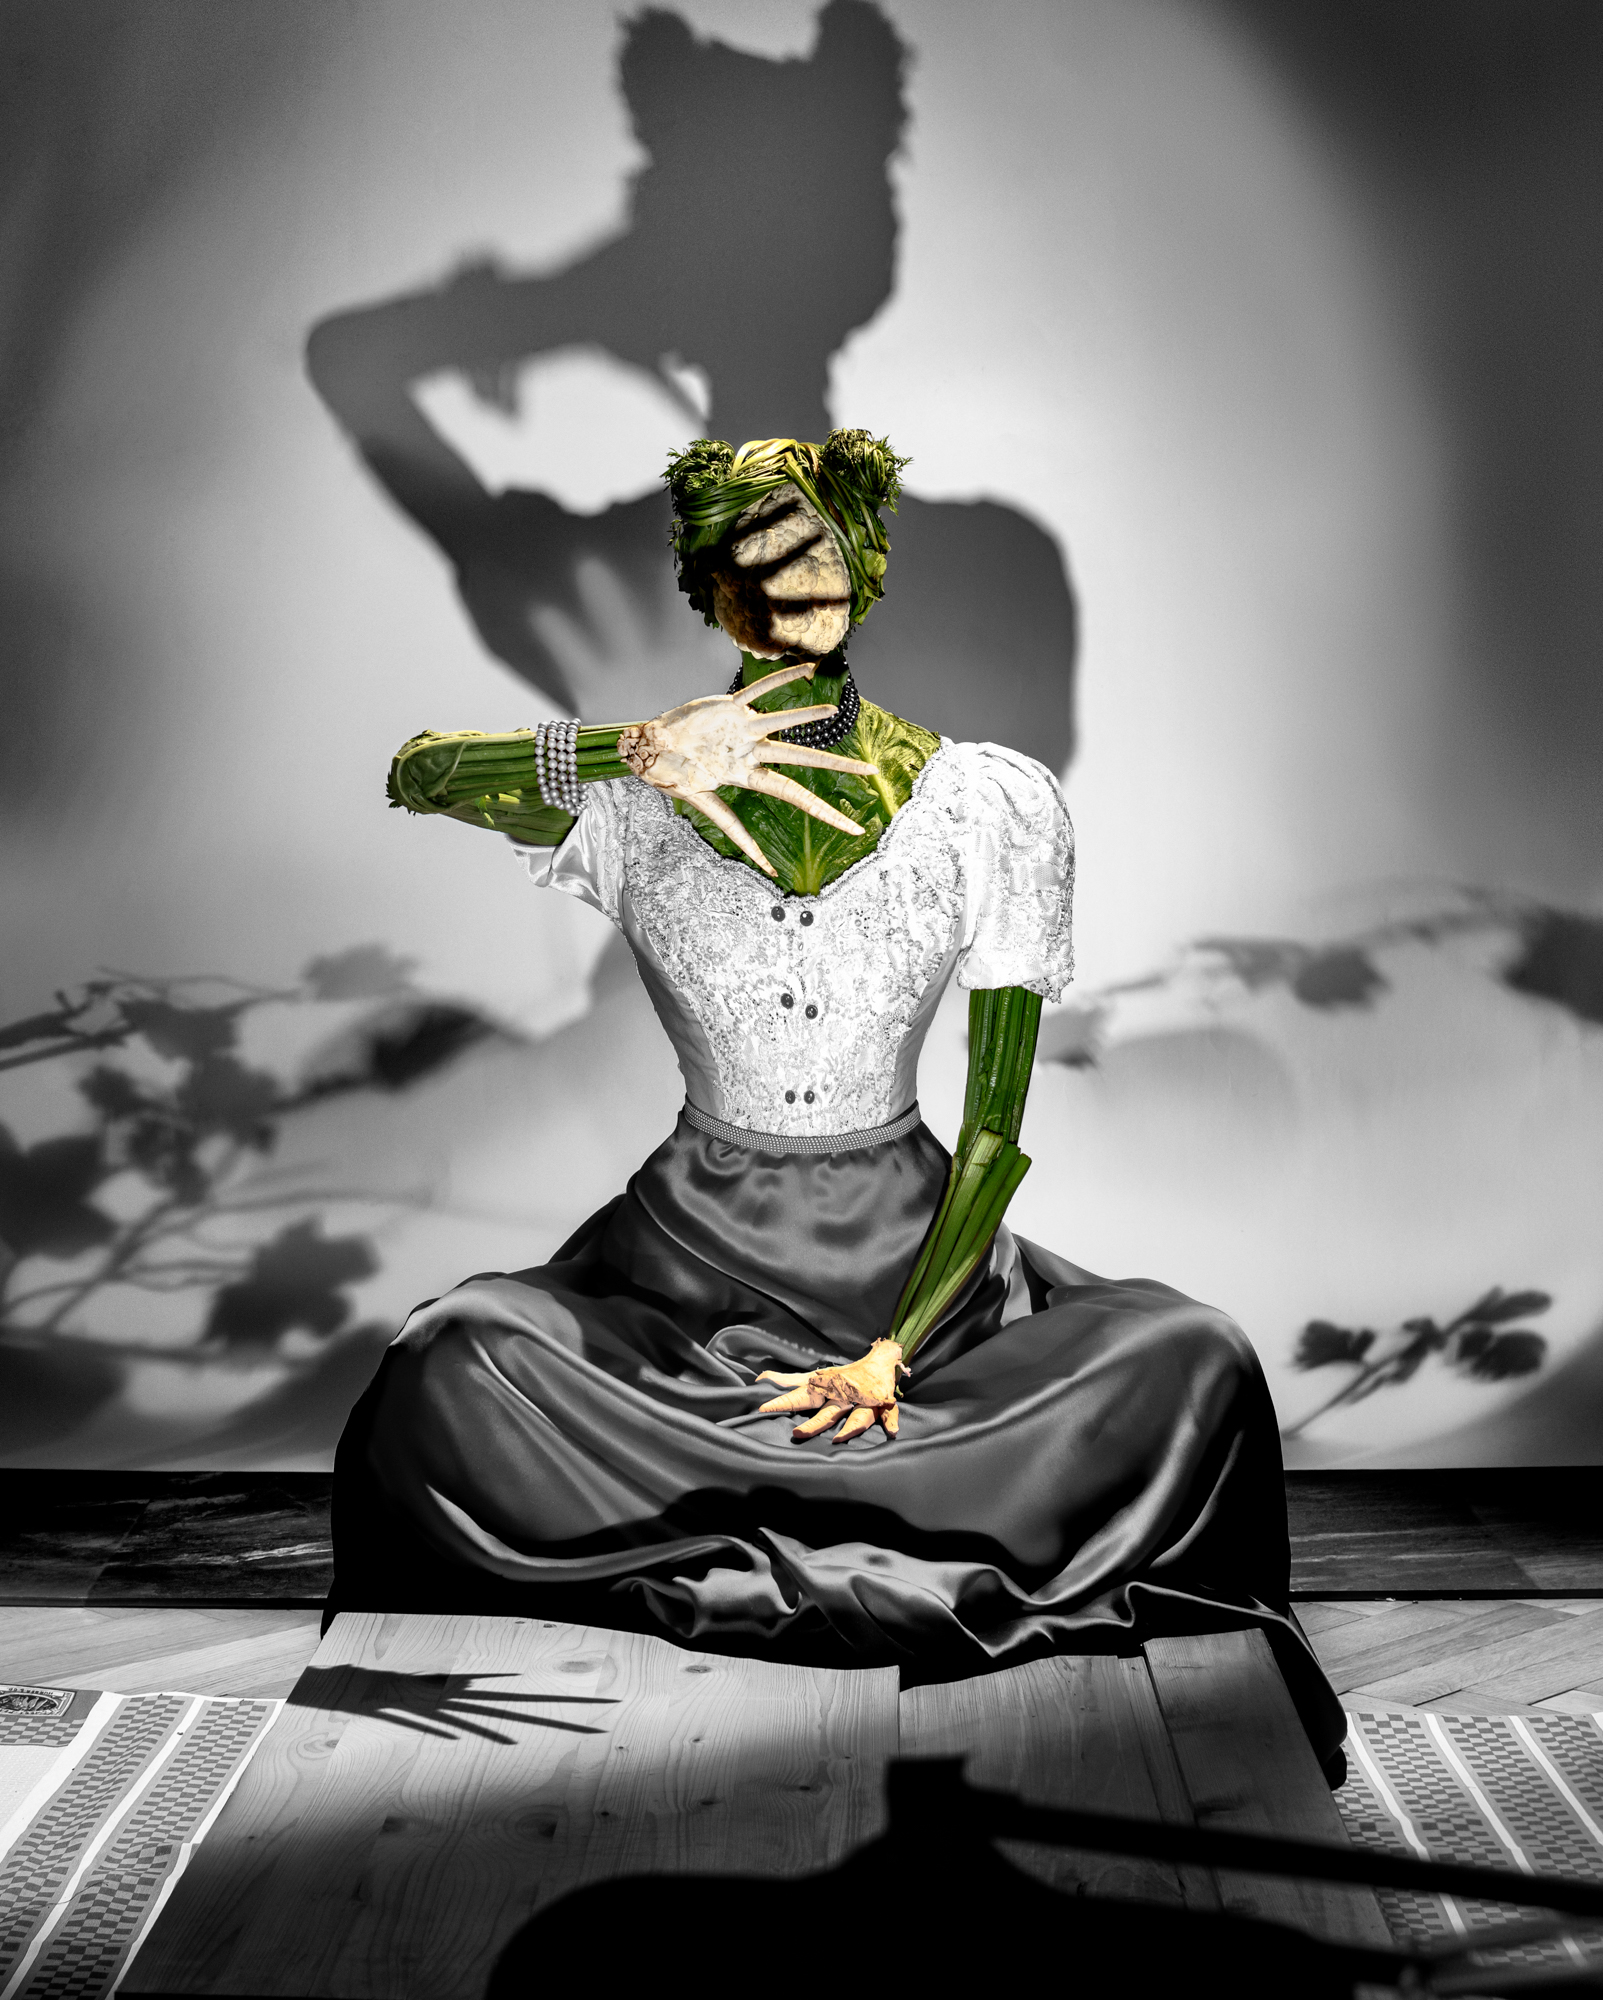 Fashion meets Food. A figure made out of cabbage, cauliflower and celery root resembling a woman sitting cross legged with her right hand covering her head from the harsh light falling on her. Her shadow falling on the wall behind her.